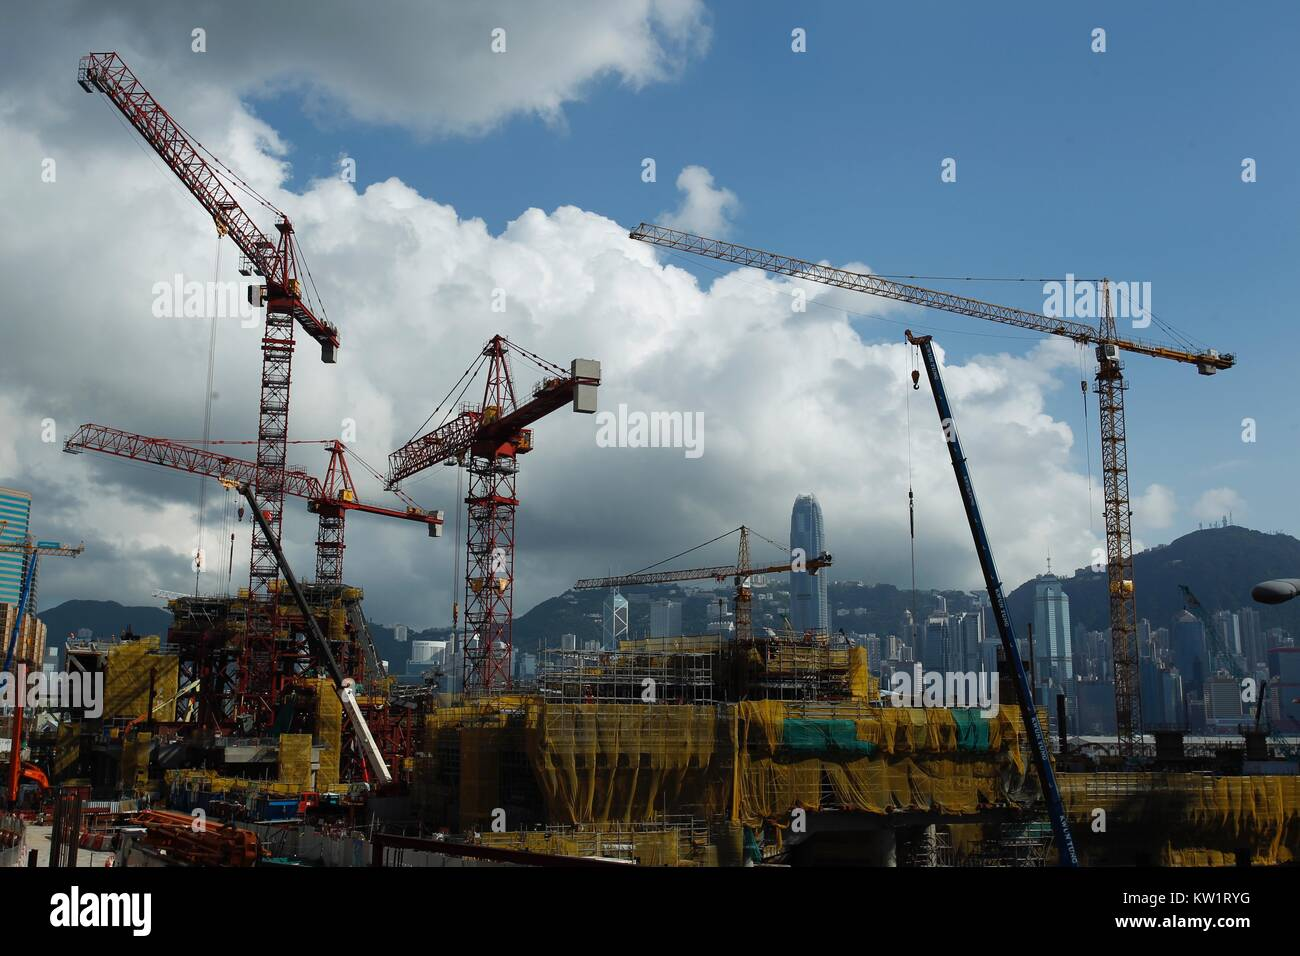 Co Location Stock Photos & Co Location Stock Images - Alamy